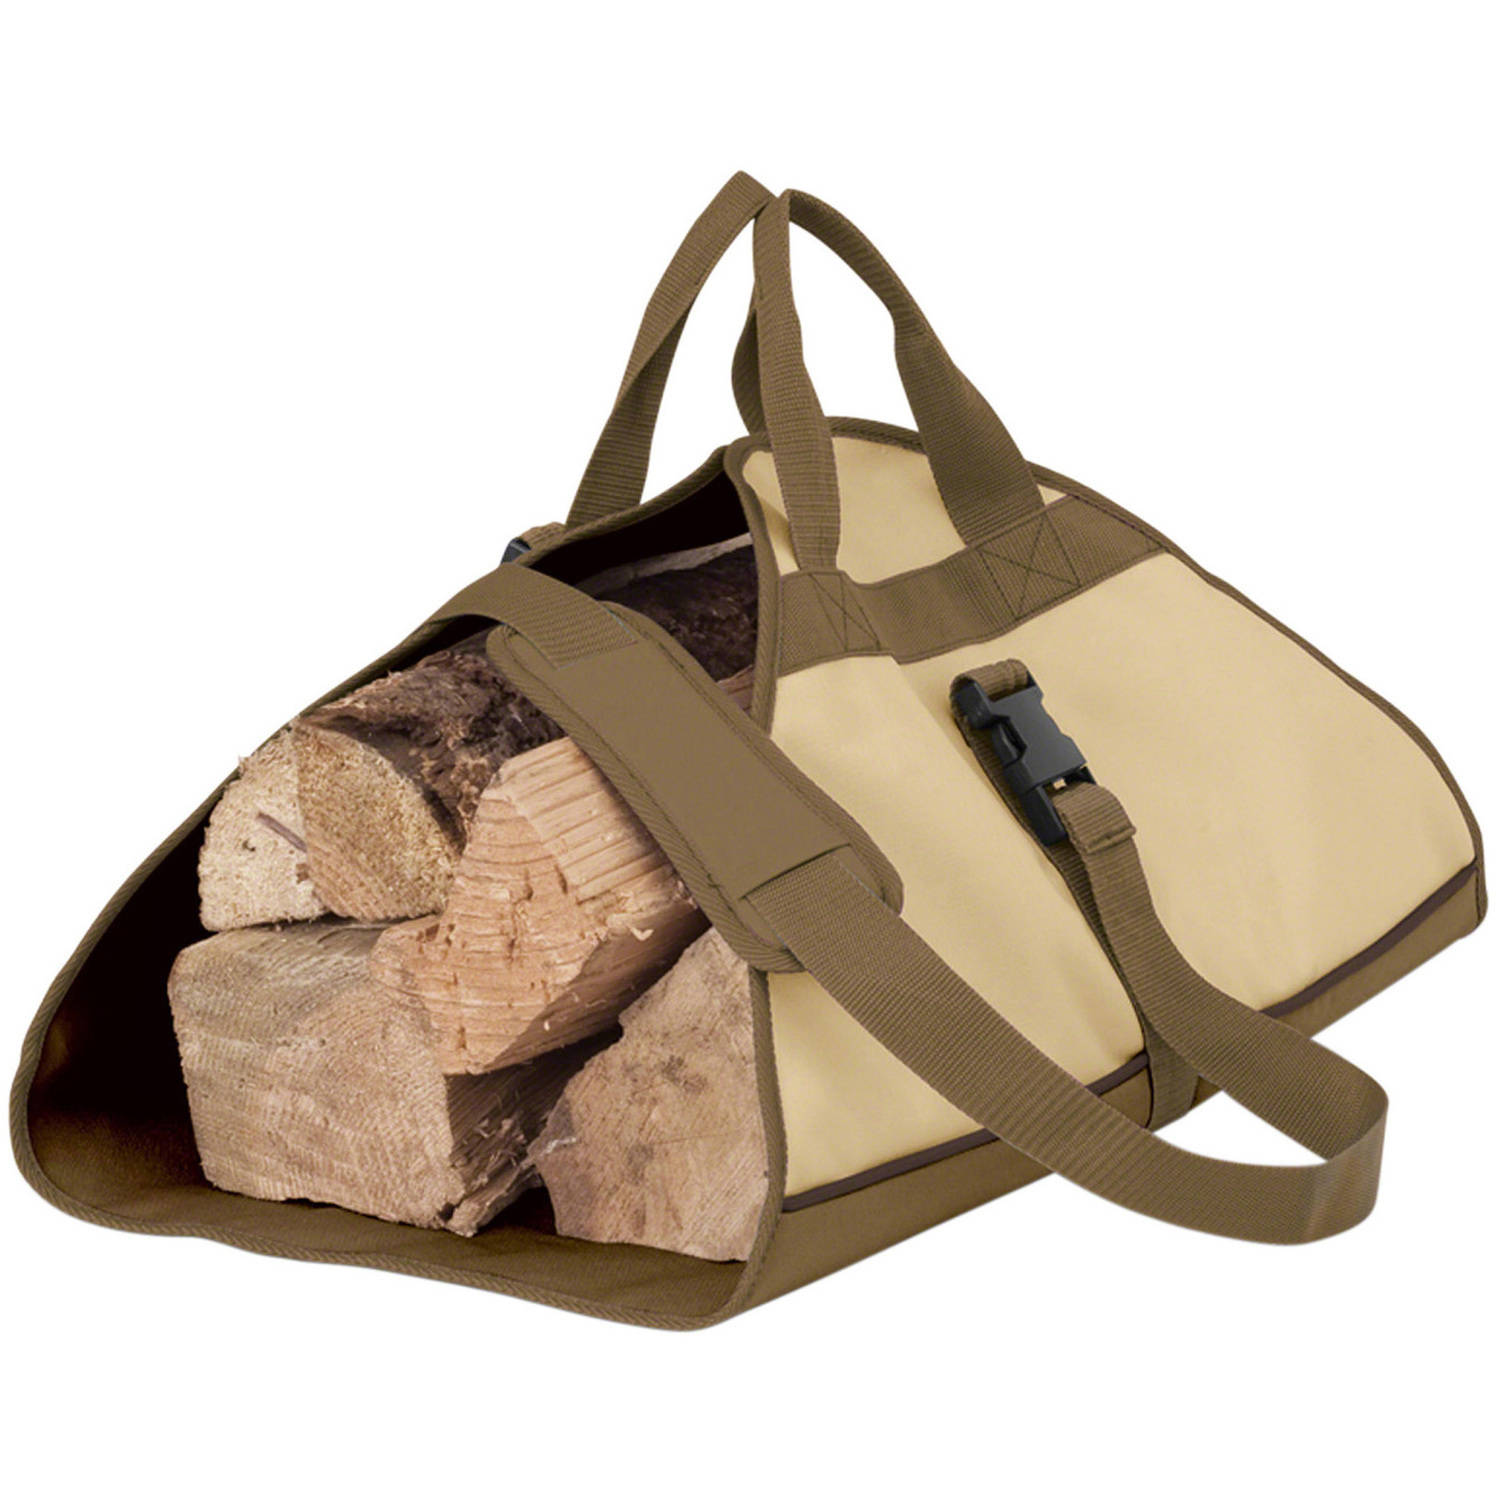 Classic Accessories Veranda Fireplace Firewood Log Carrier